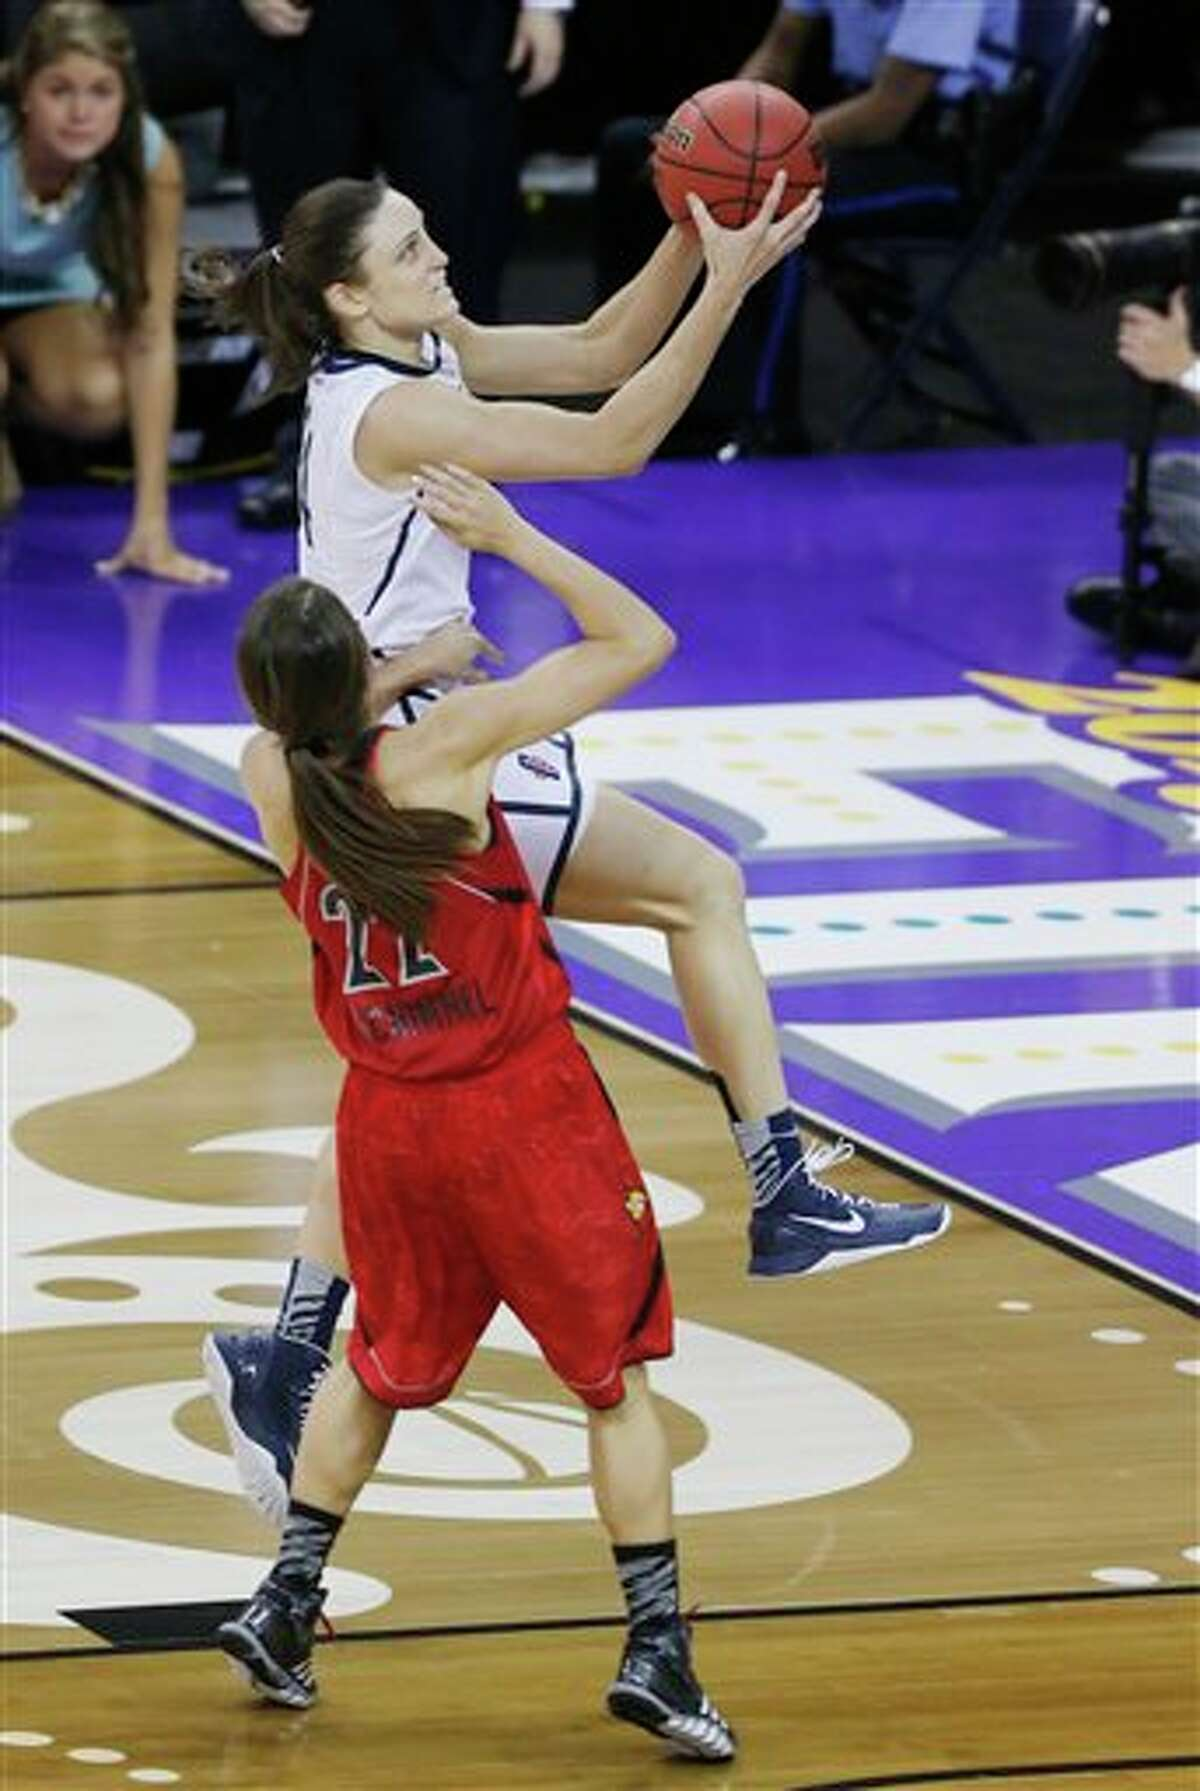 Connecticut guard Kelly Faris (34) goes up for a shot against Louisville guard Jude Schimmel (22) during the second half of the national championship game of the women's Final Four of the NCAA college basketball tournament, Tuesday, April 9, 2013, in New Orleans. (AP Photo/Bill Haber)